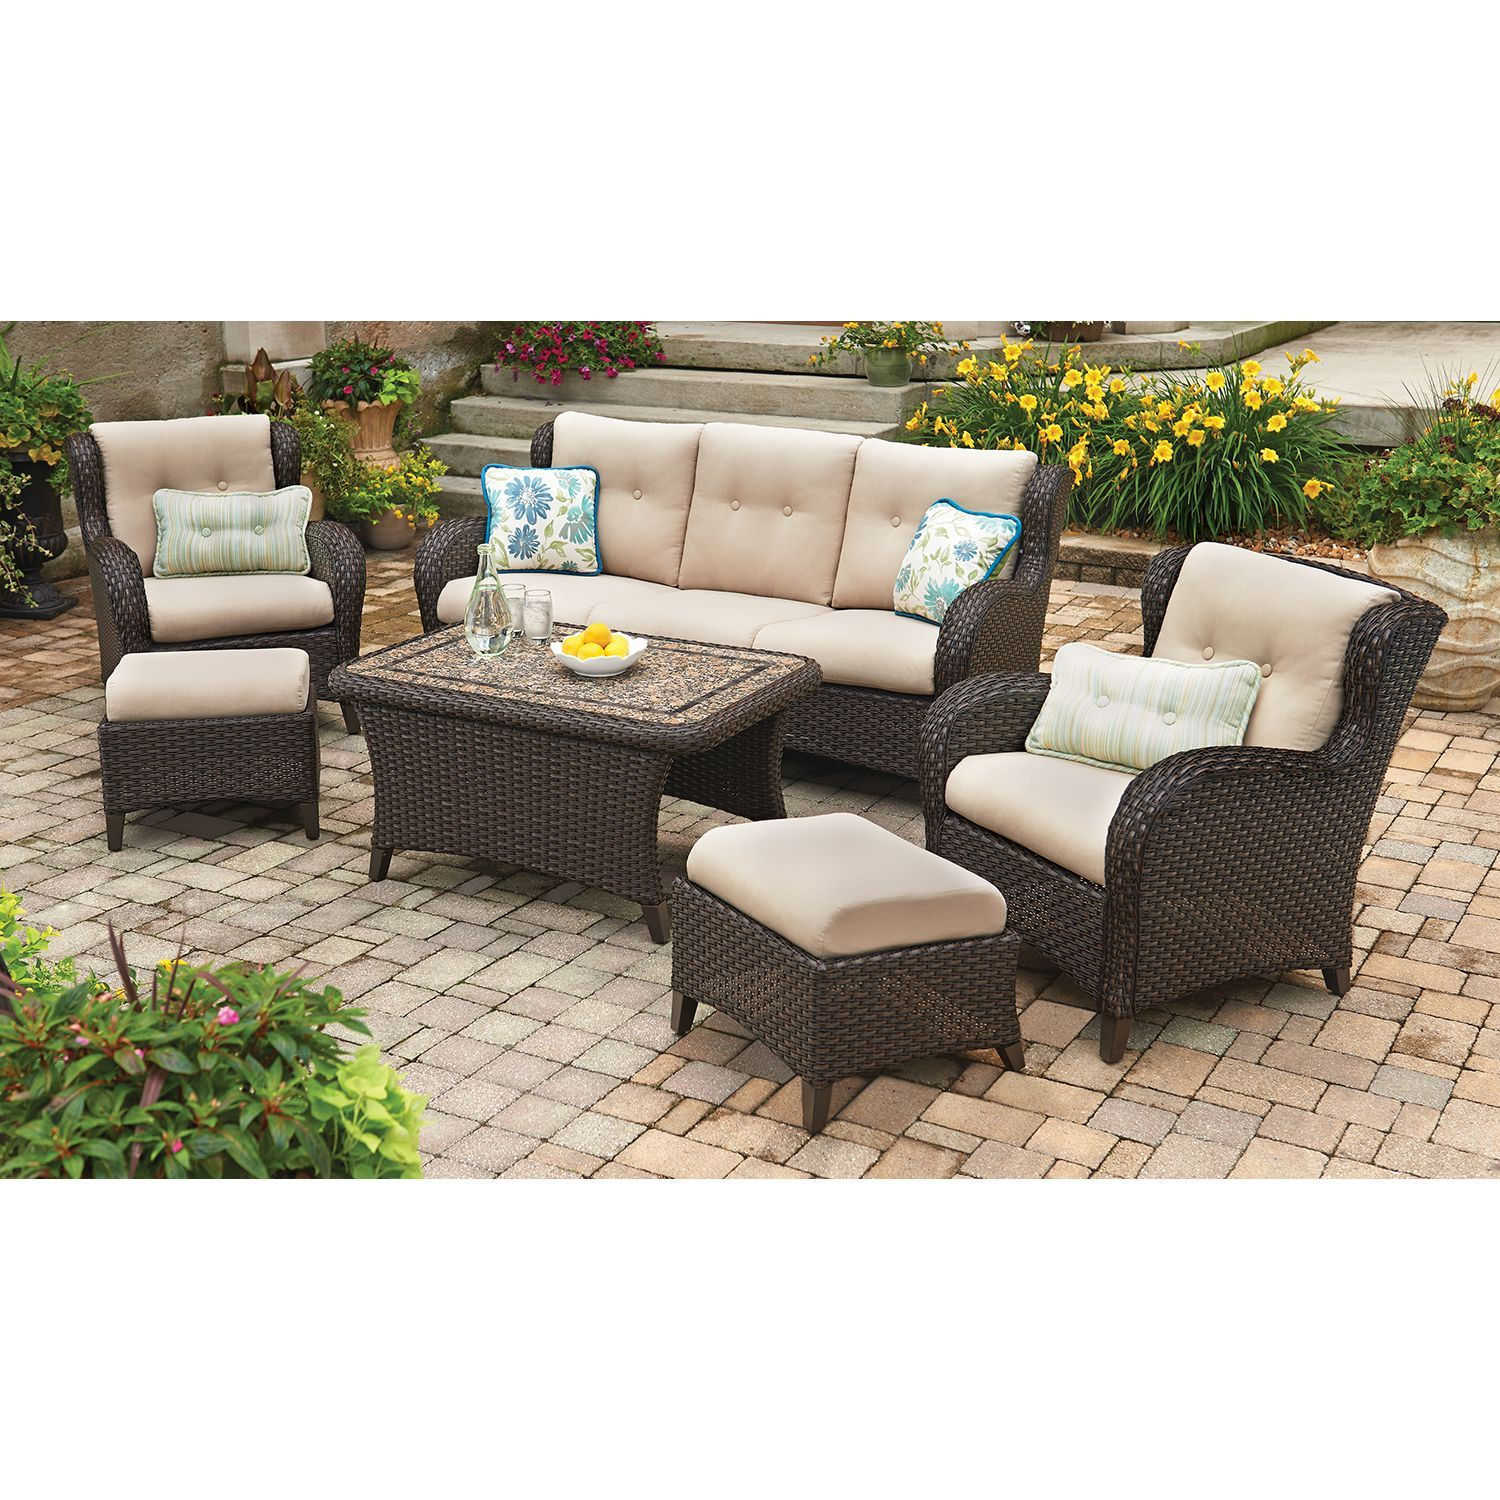 Member's Mark® Heritage 6-Piece Deep Seating Set with Premium Sunbrella®  Fabric - Sam's Club $1699 - Member's Mark® Heritage 6-Piece Deep Seating Set With Premium